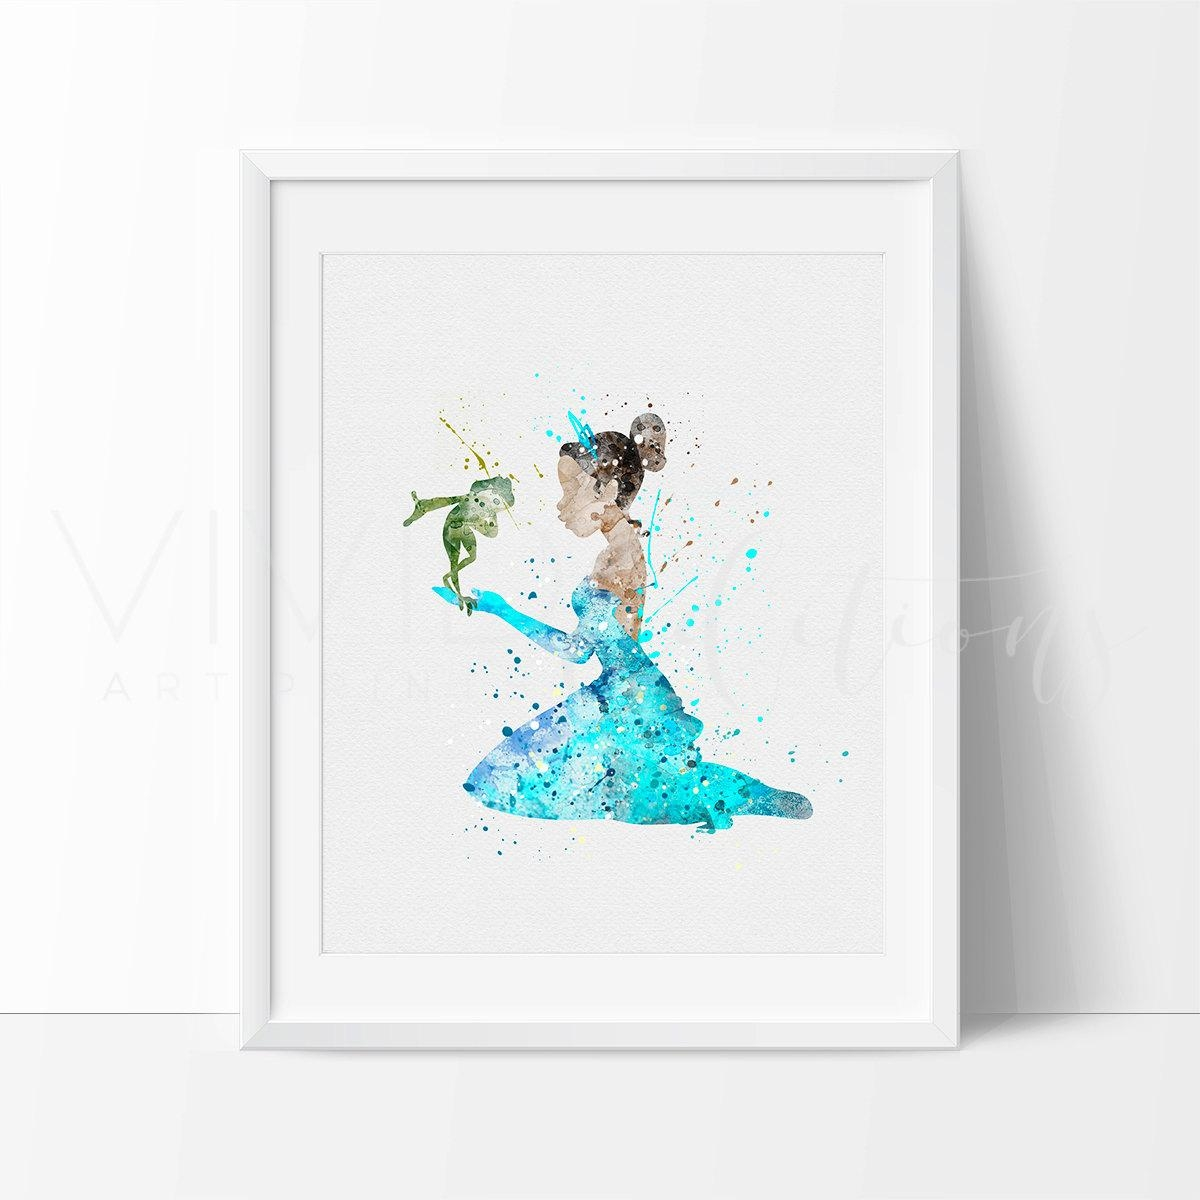 Princess Tiana Princess And The Frog Disney Baby Girl Throughout Disney Princess Framed Wall Art (View 8 of 20)